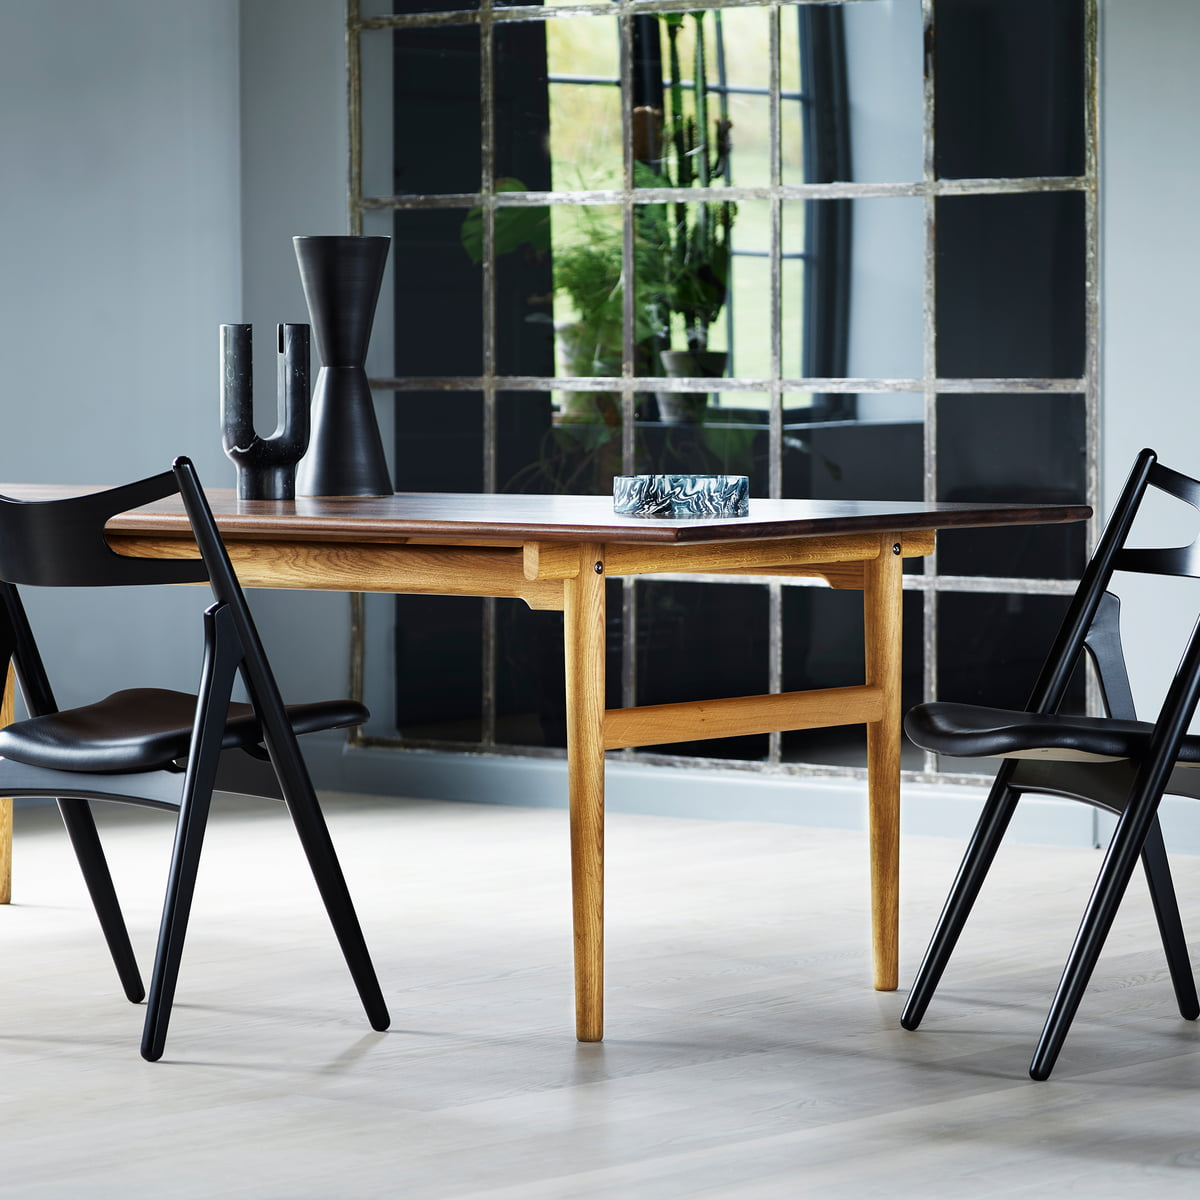 The Carl Hansen Ch327 Dining Table